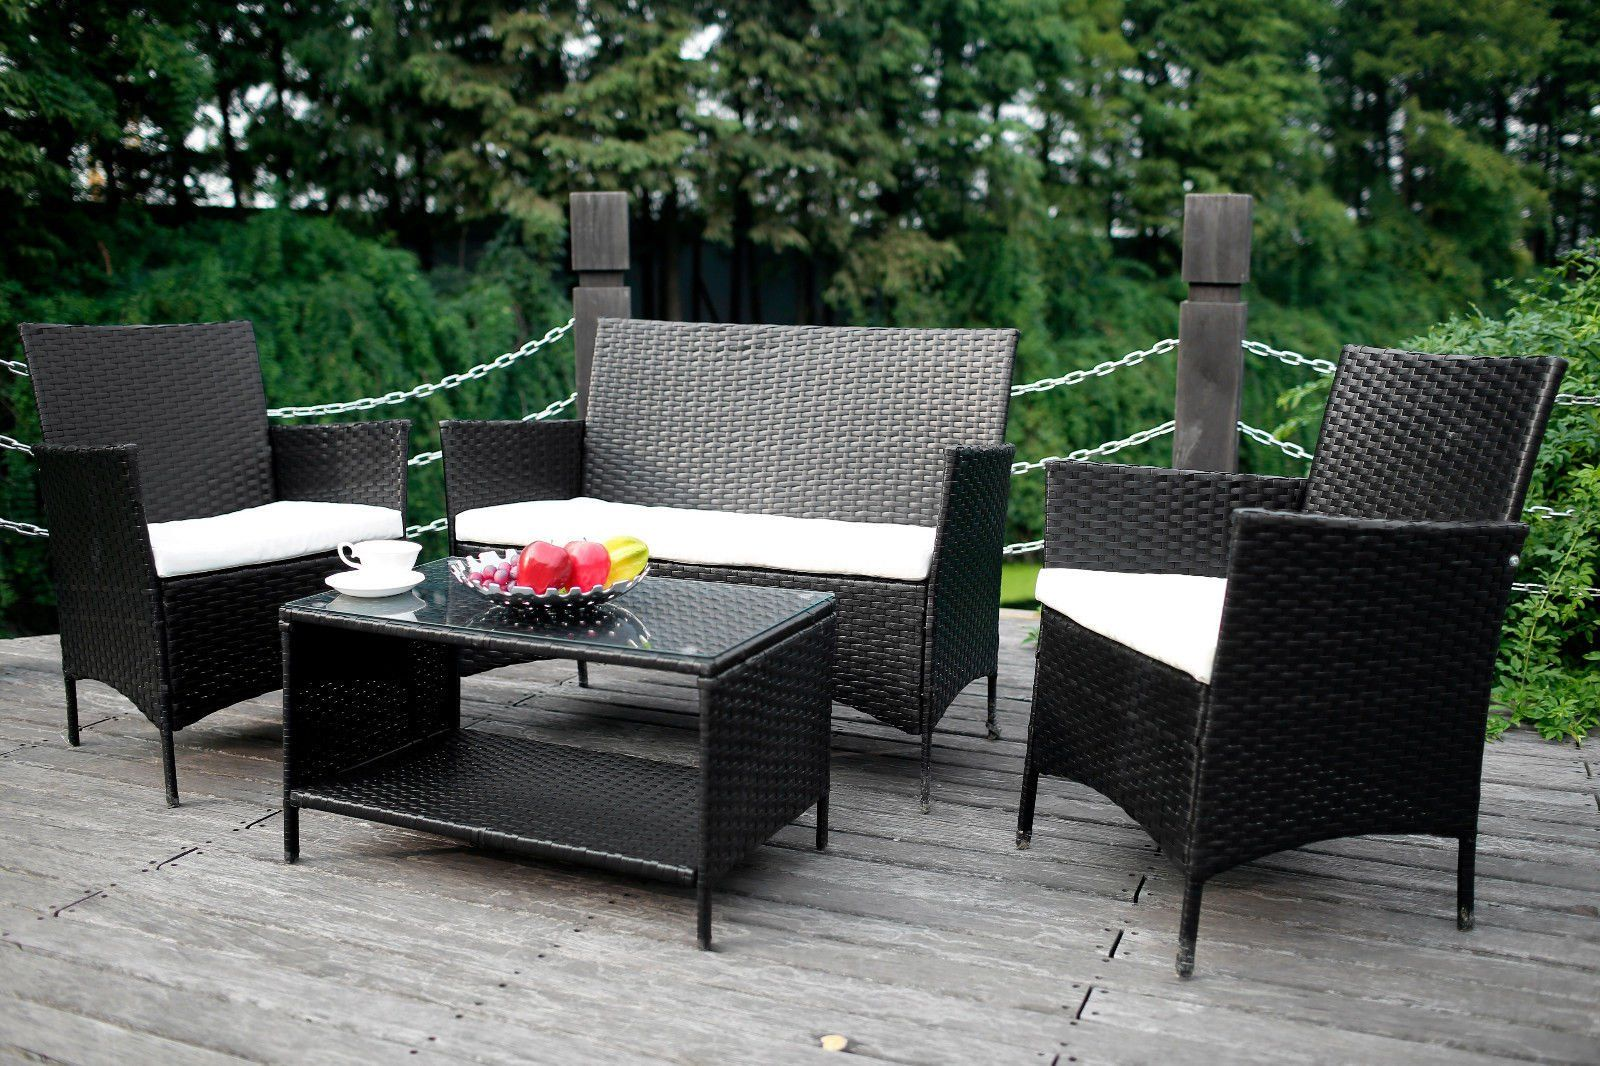 Trending pcs outdoor rattan wicker patio set garden lawn rattan